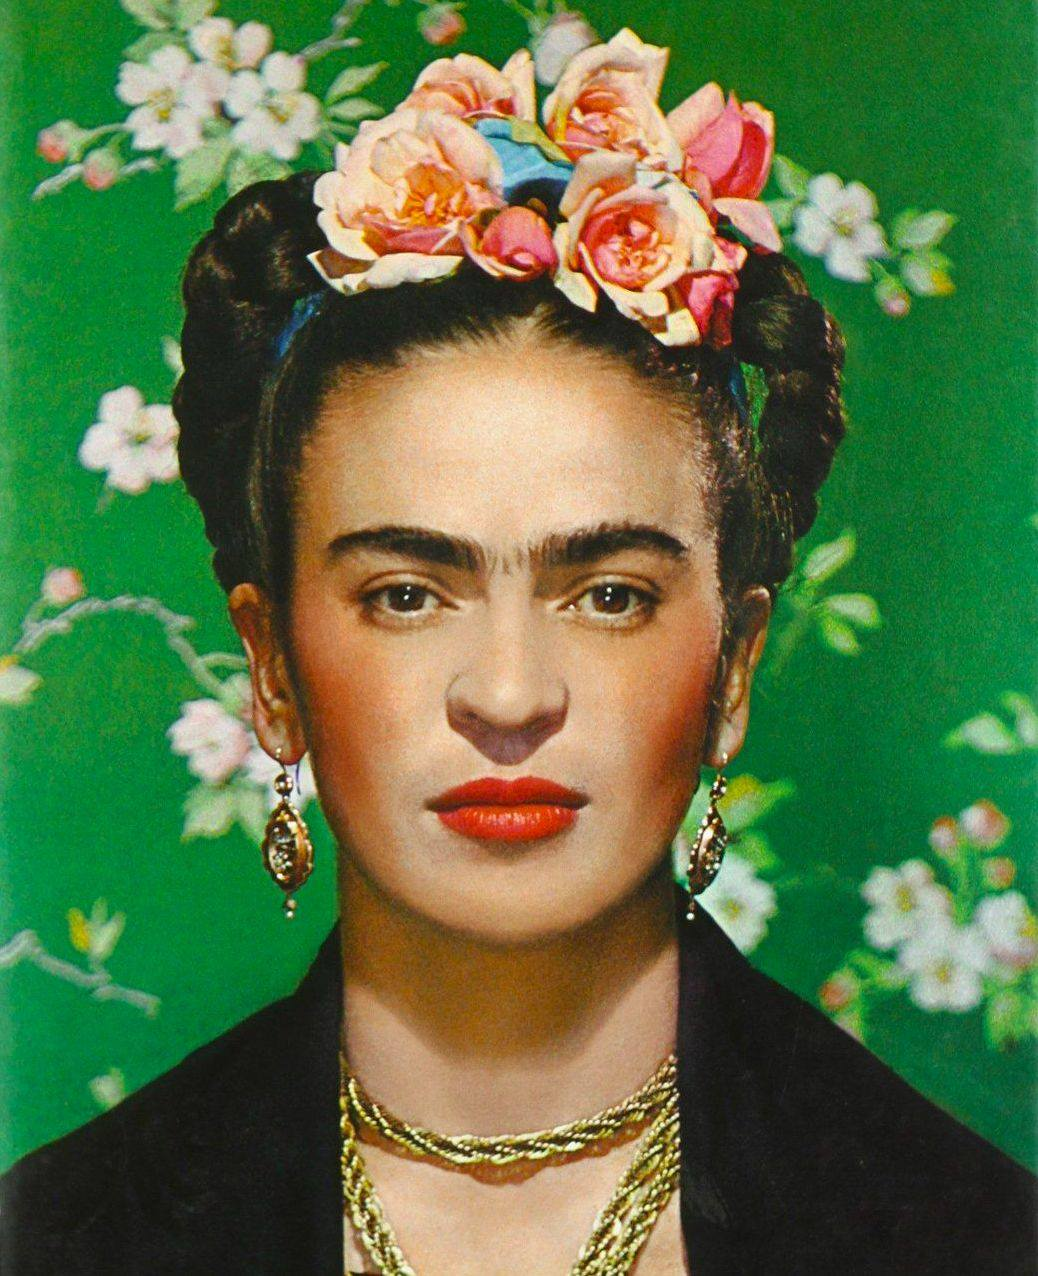 The Art Bar - Frida Kahlo, high-brow portrait painting: Saturday August 31, 2019 at 7pm